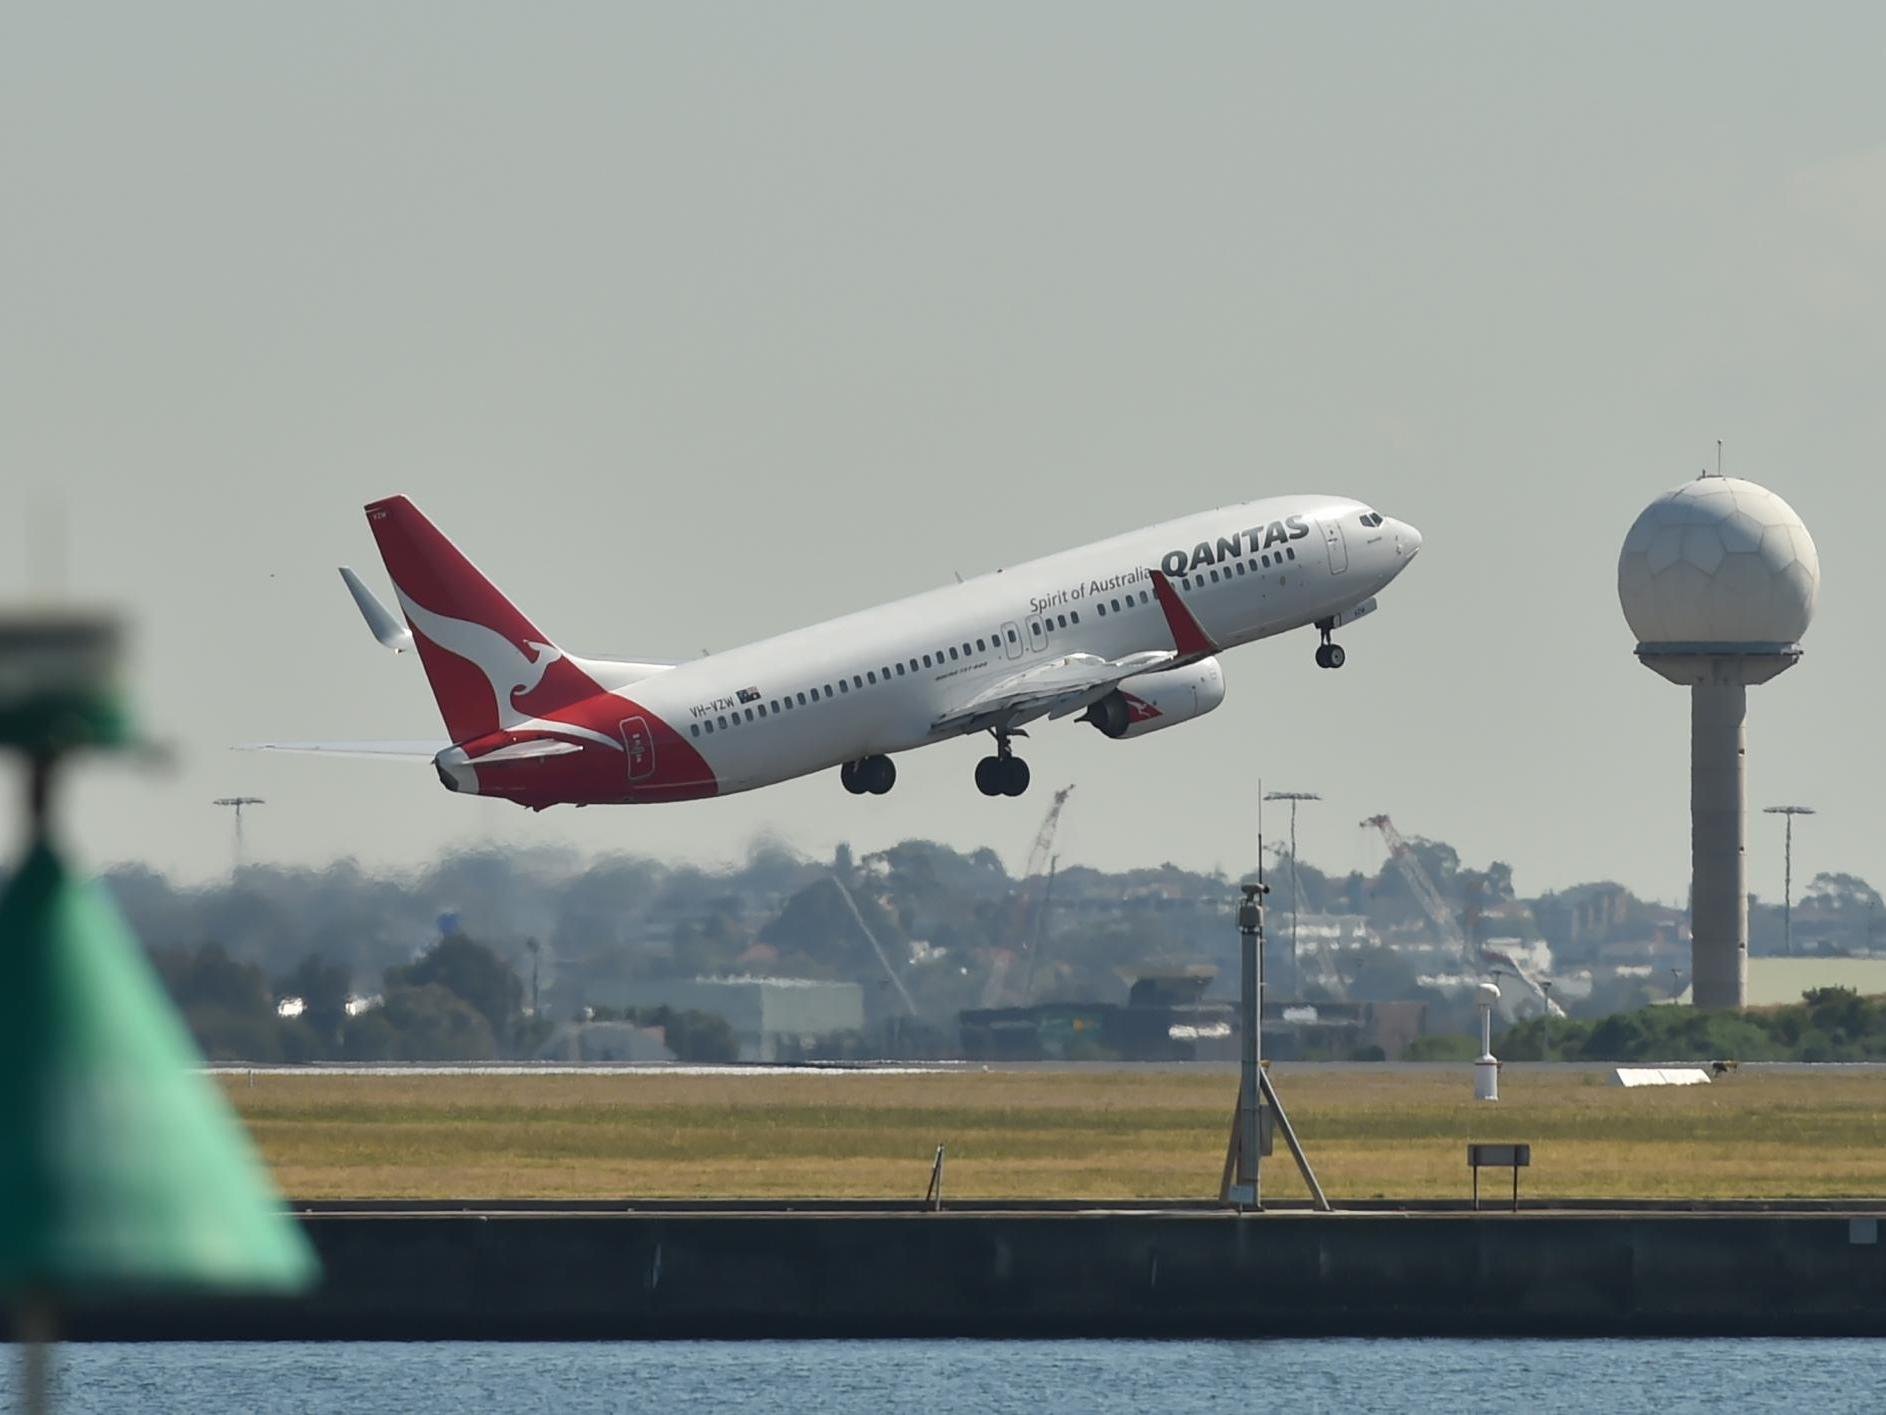 Qantas has a new solution to flight overbooking